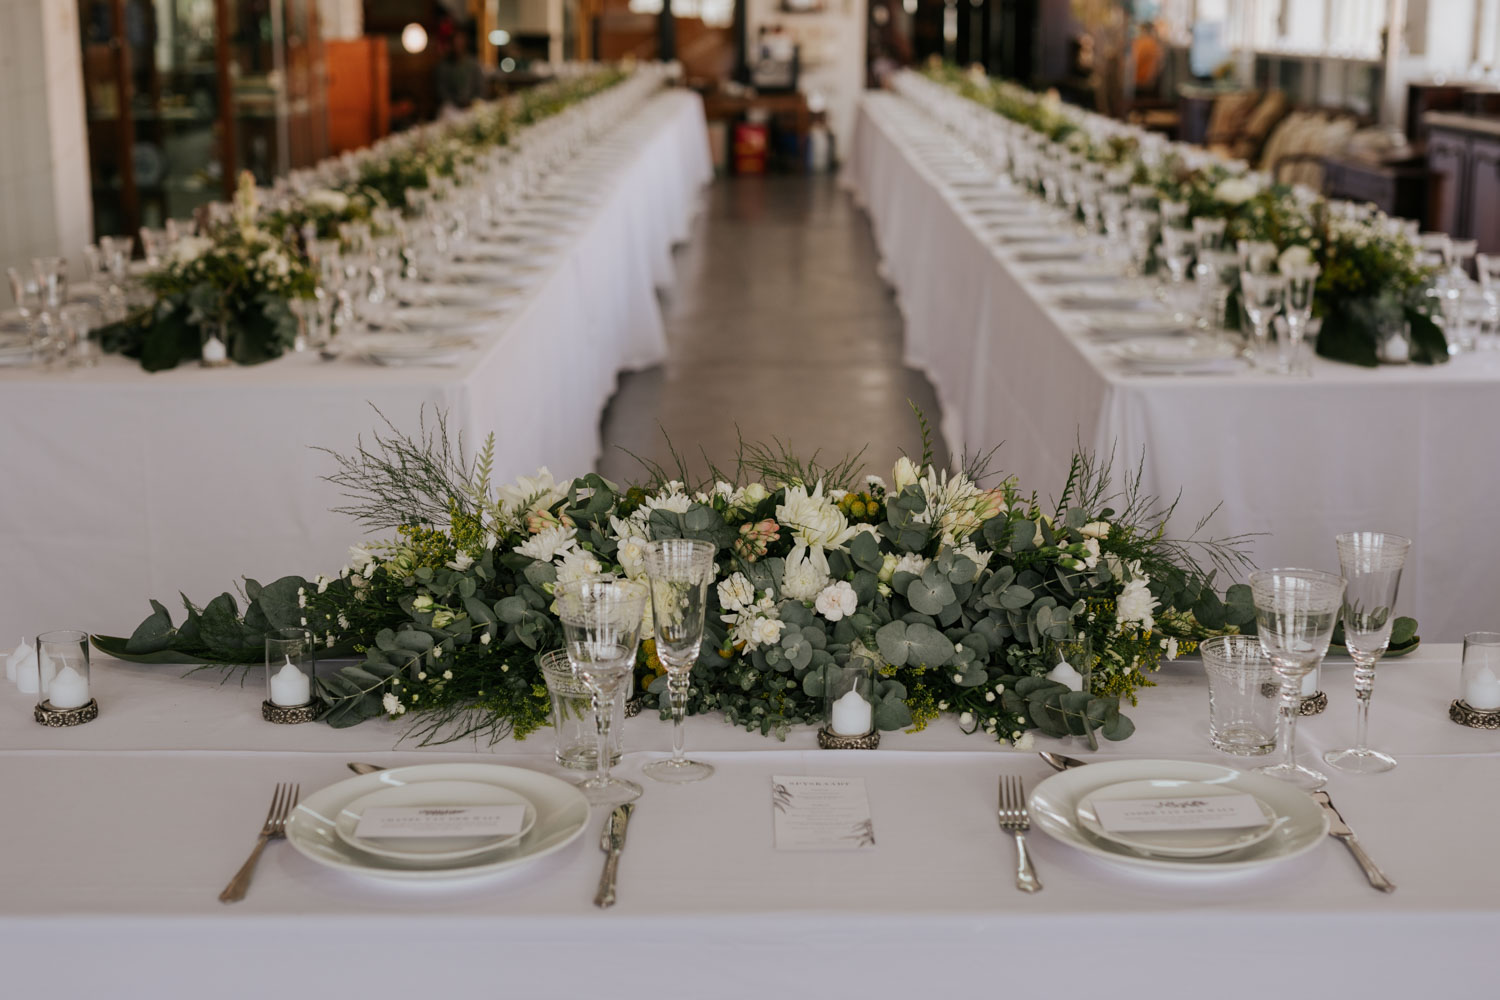 Simple White And Green Wedding Decor With Flowers, Eucalyptus Leaves And Candles